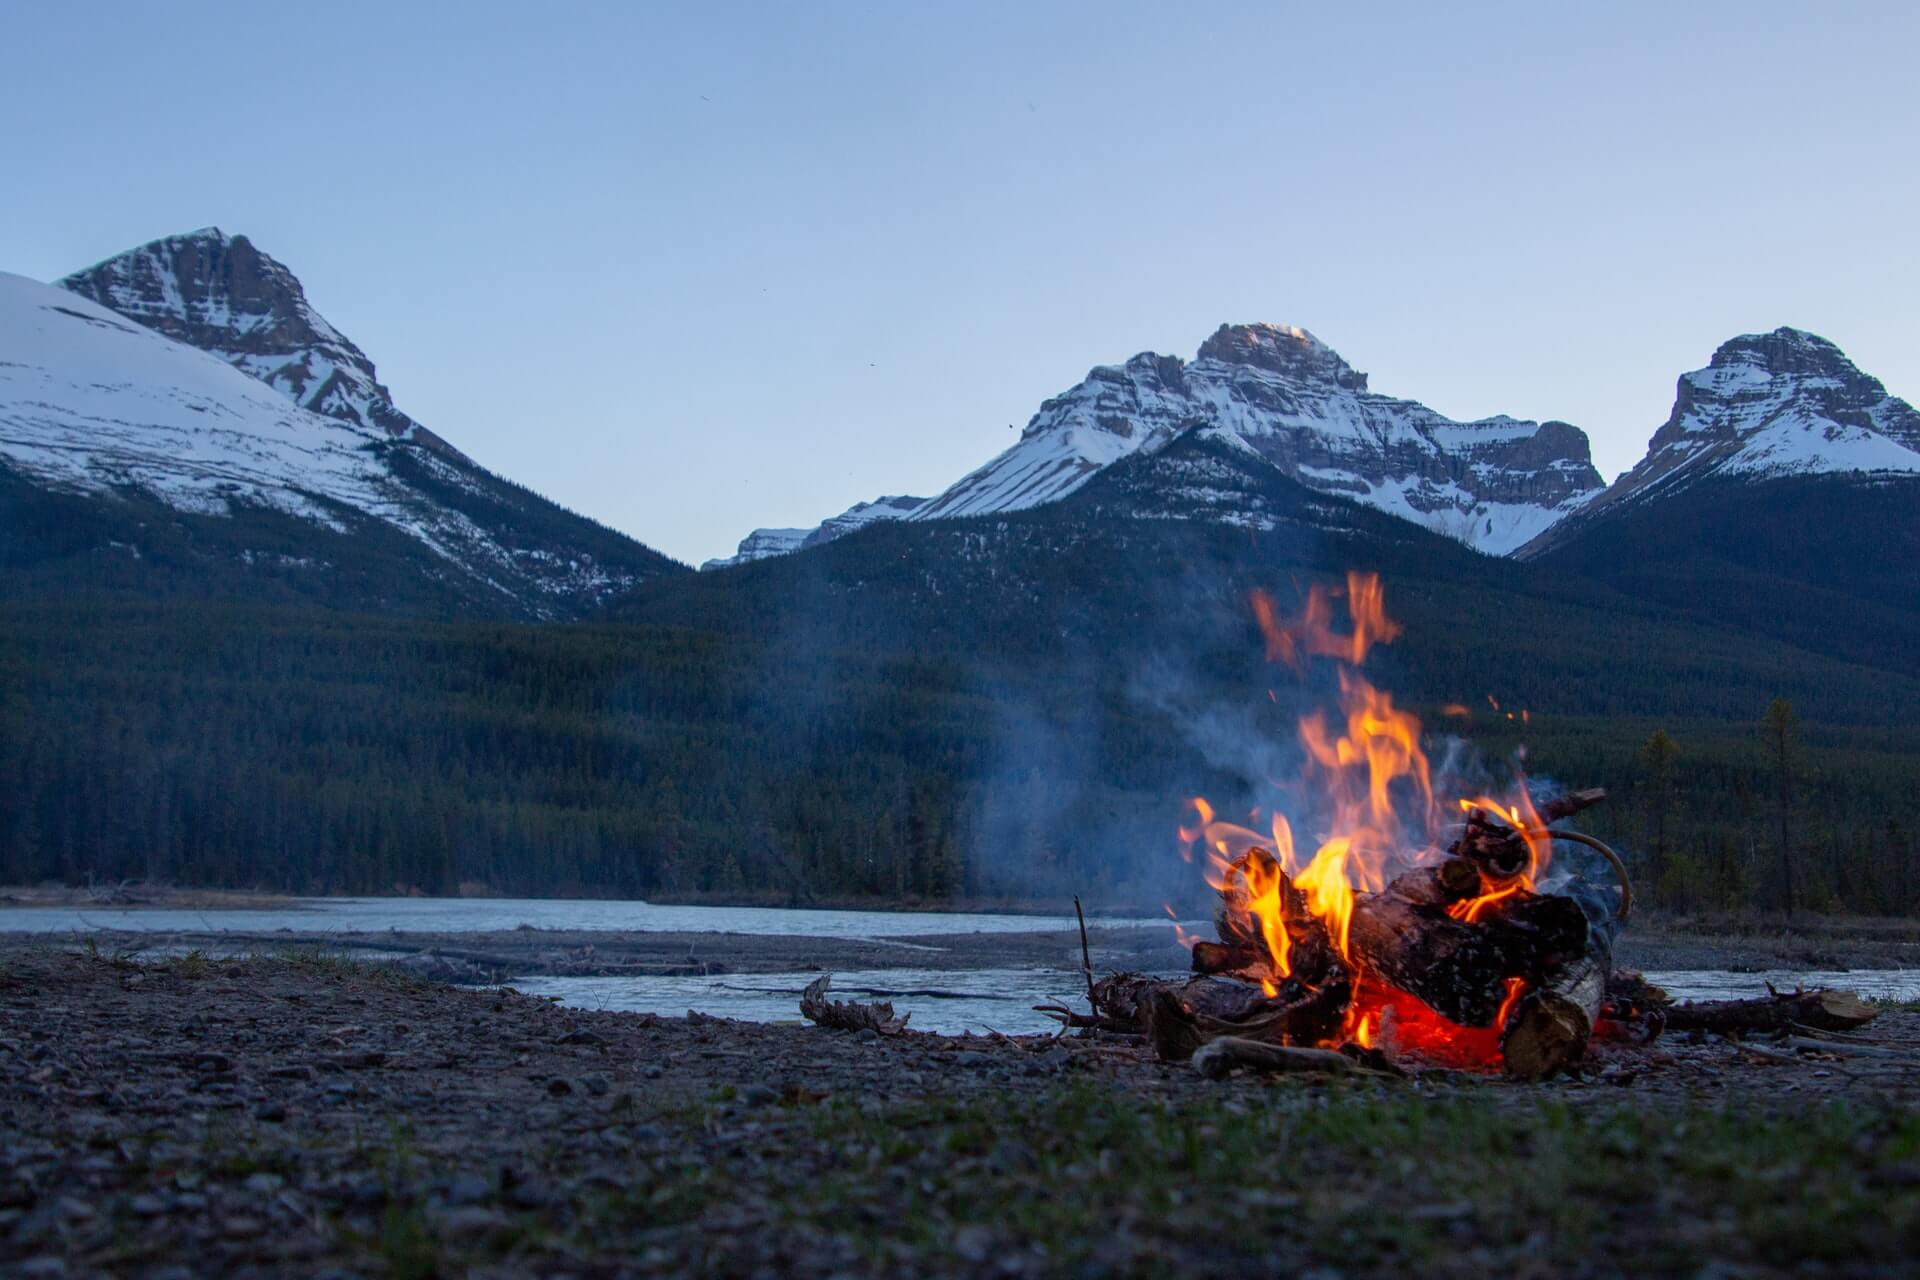 Fire burning in the evening with snow-coated mountains in the background